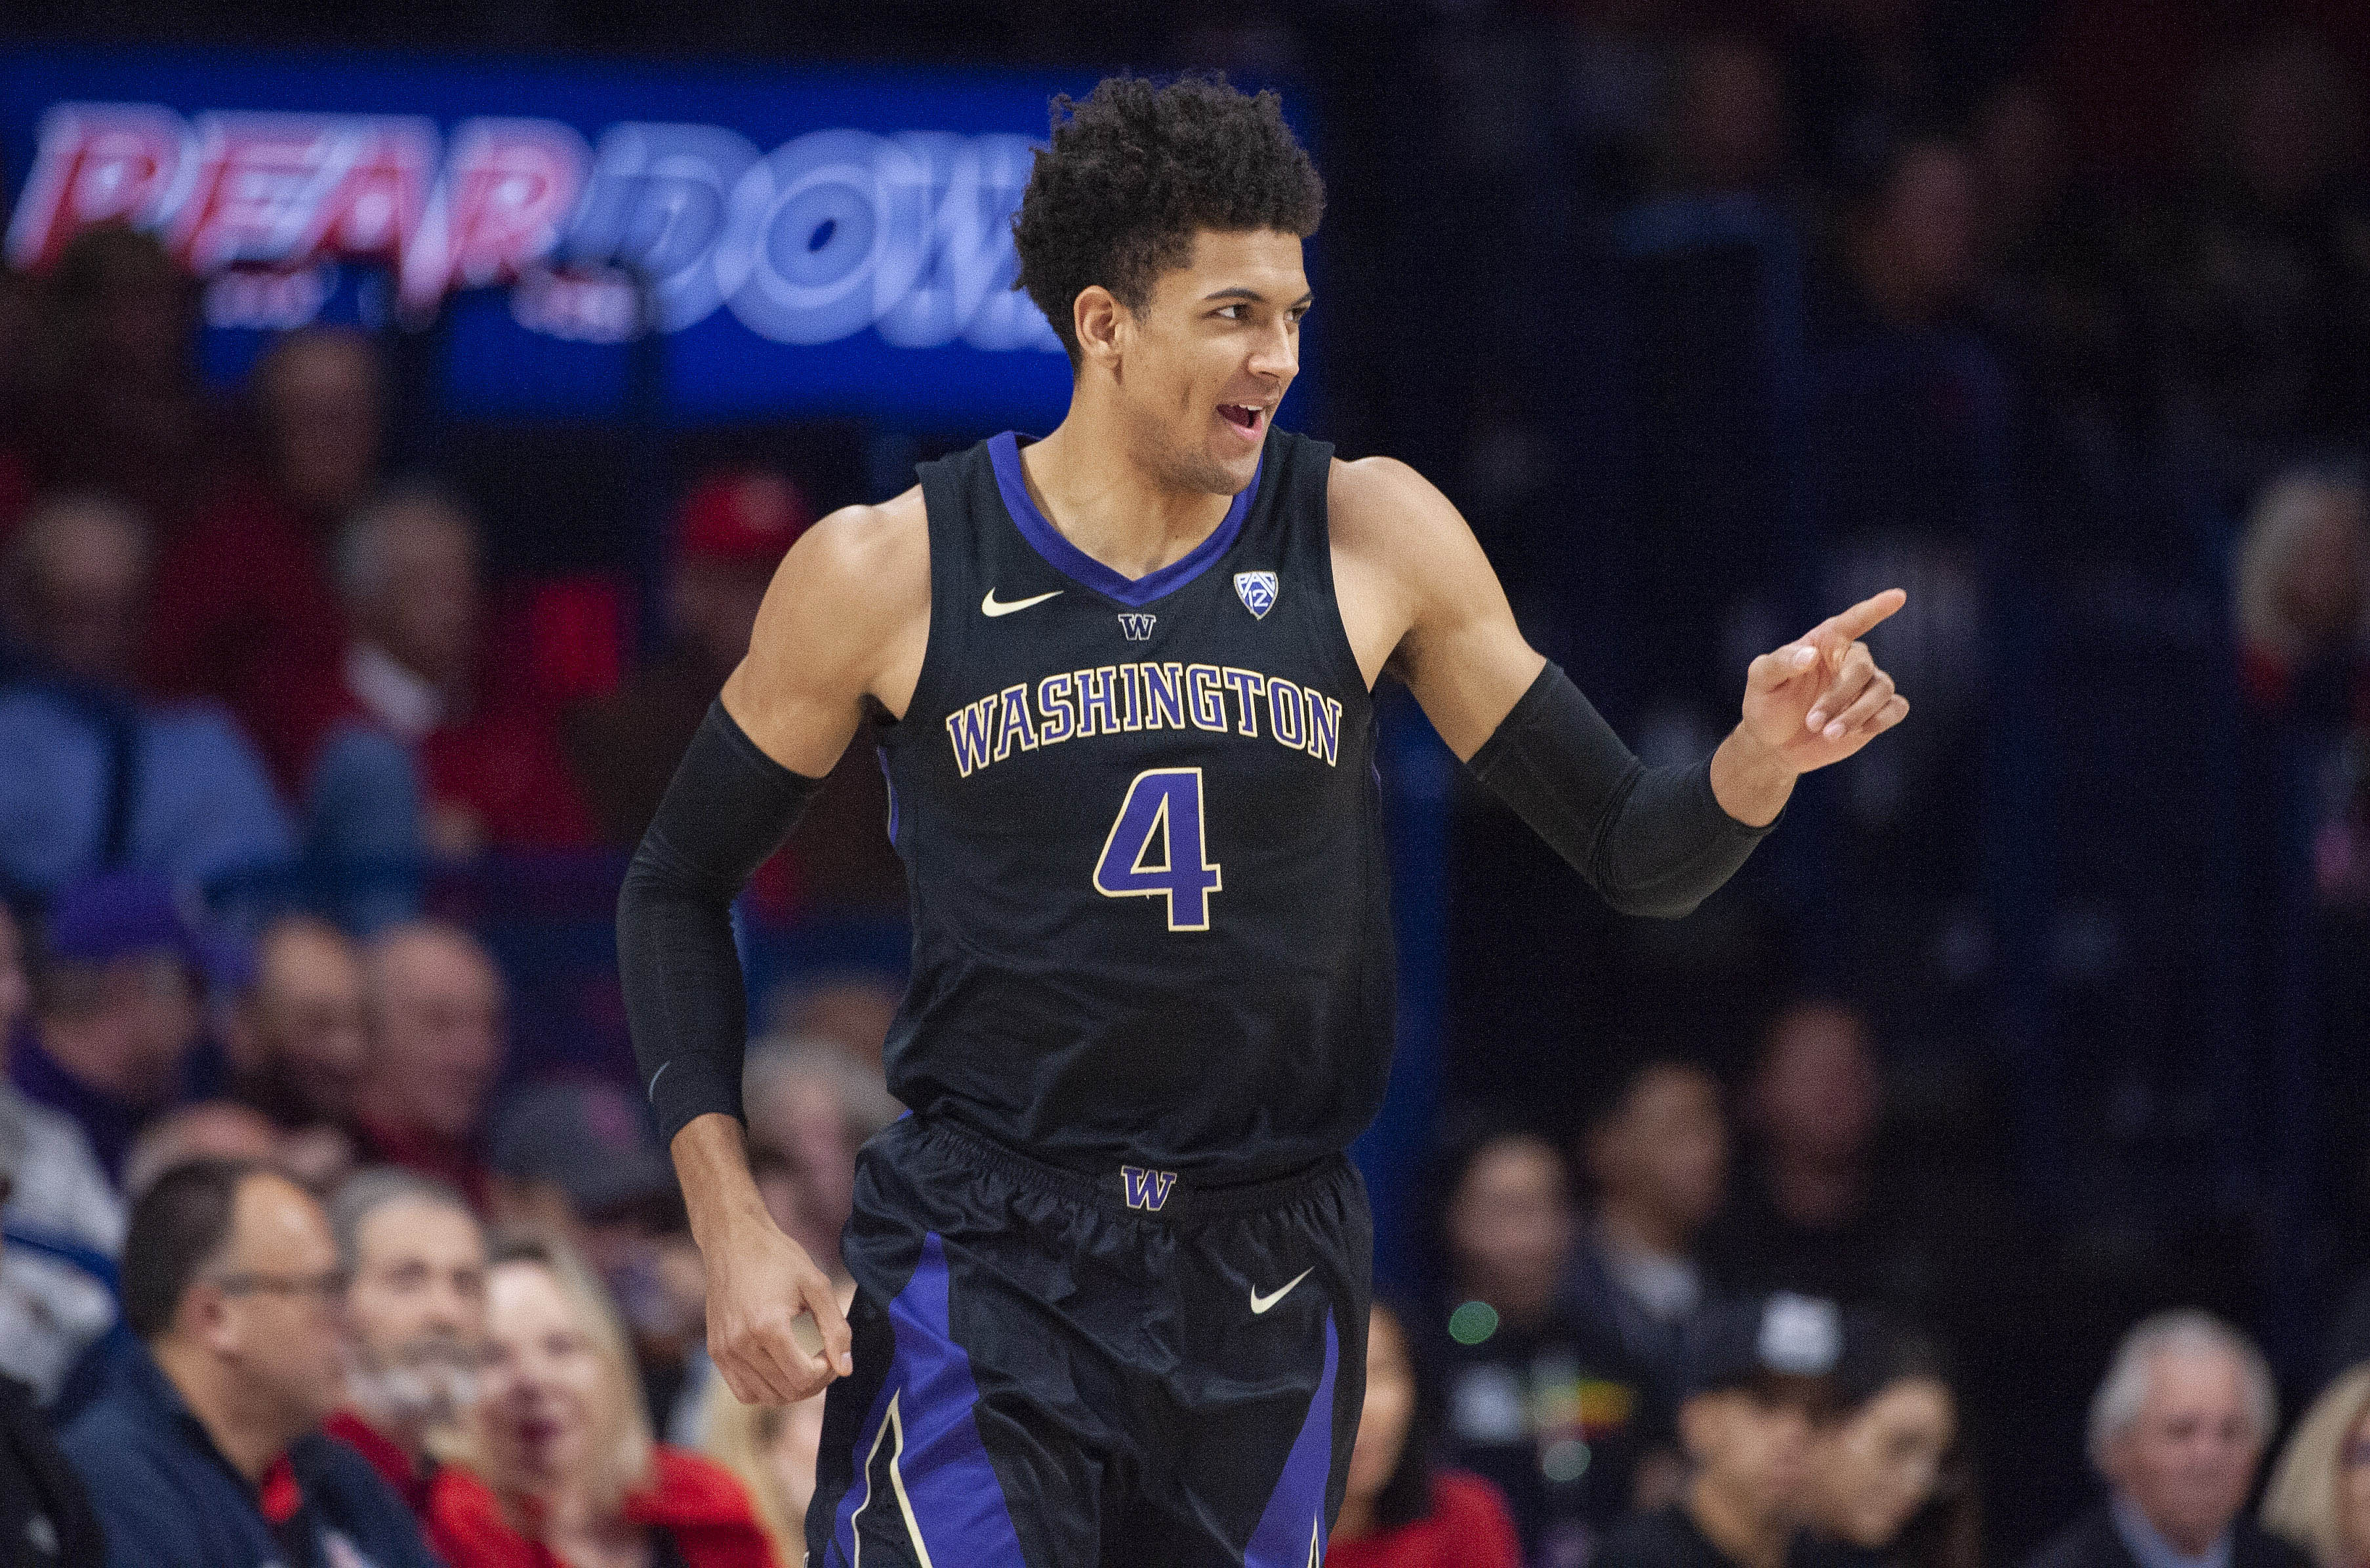 2019 NBA Draft: Sixers move up to select Matisse Thybulle with No. 20 pick